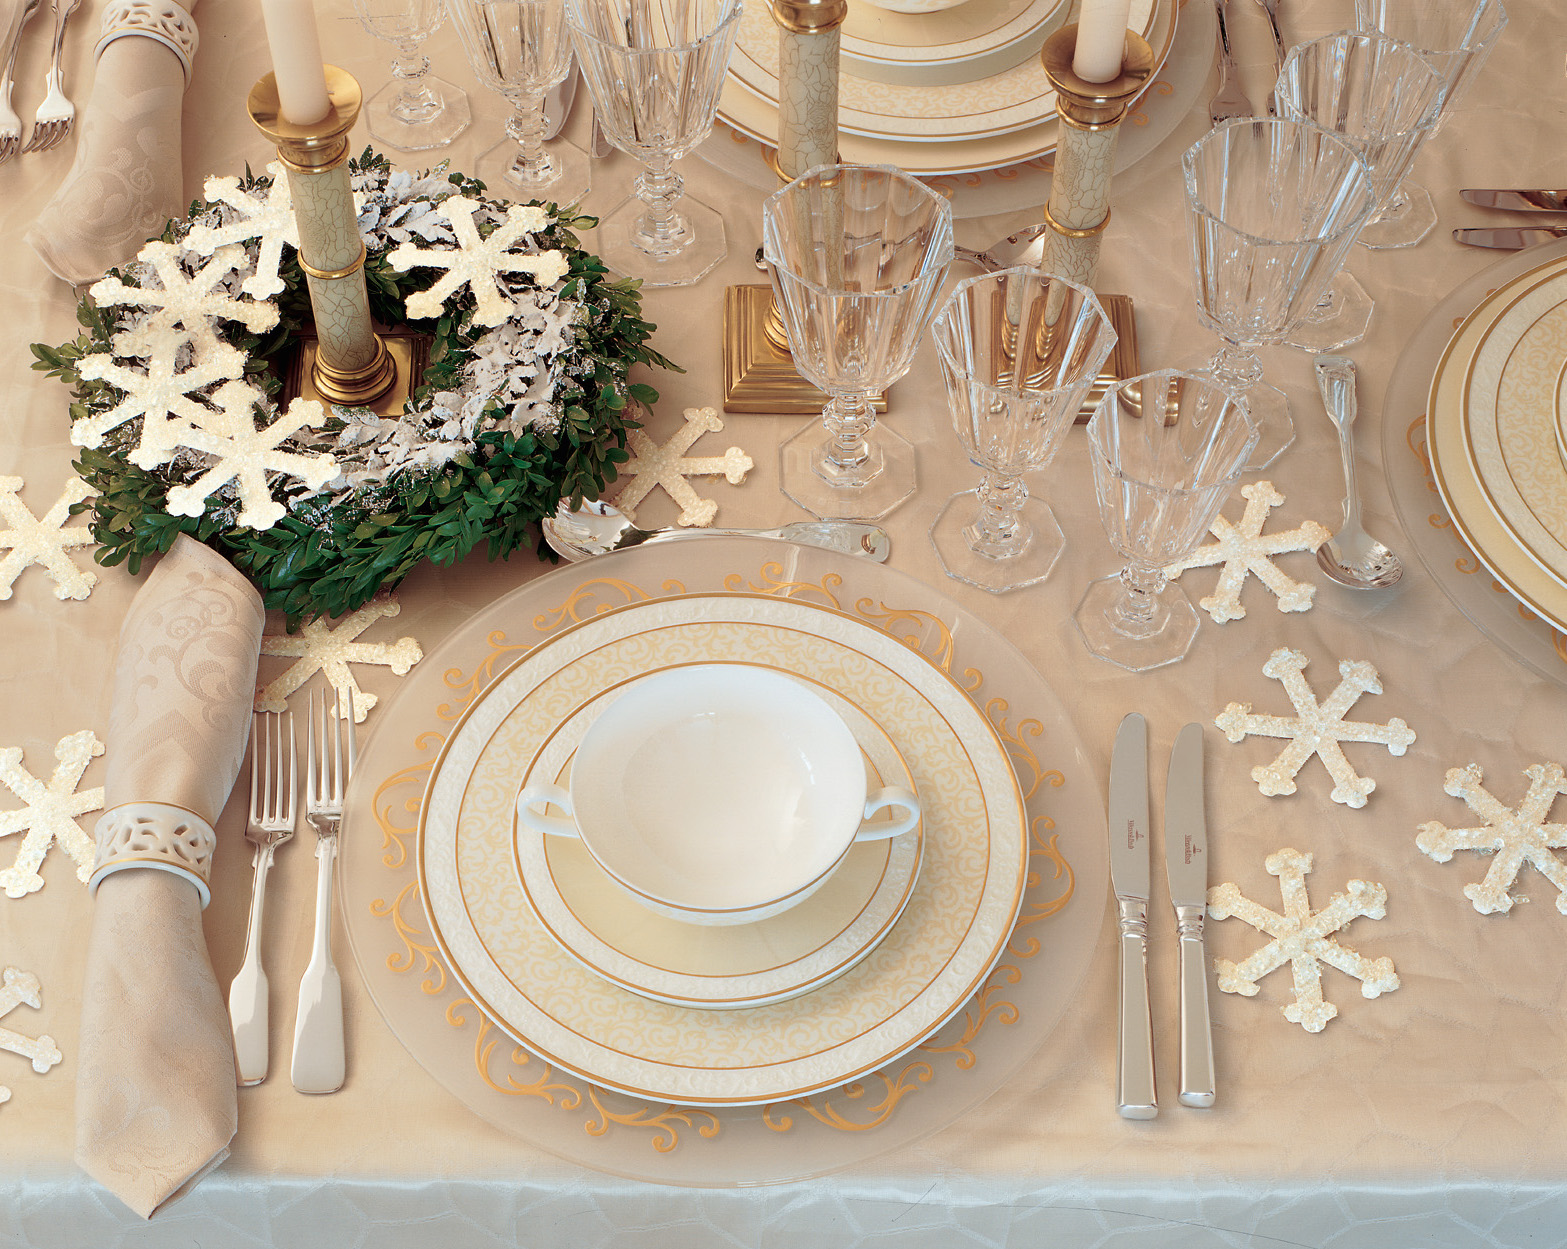 Winter wedding ideas table decorations